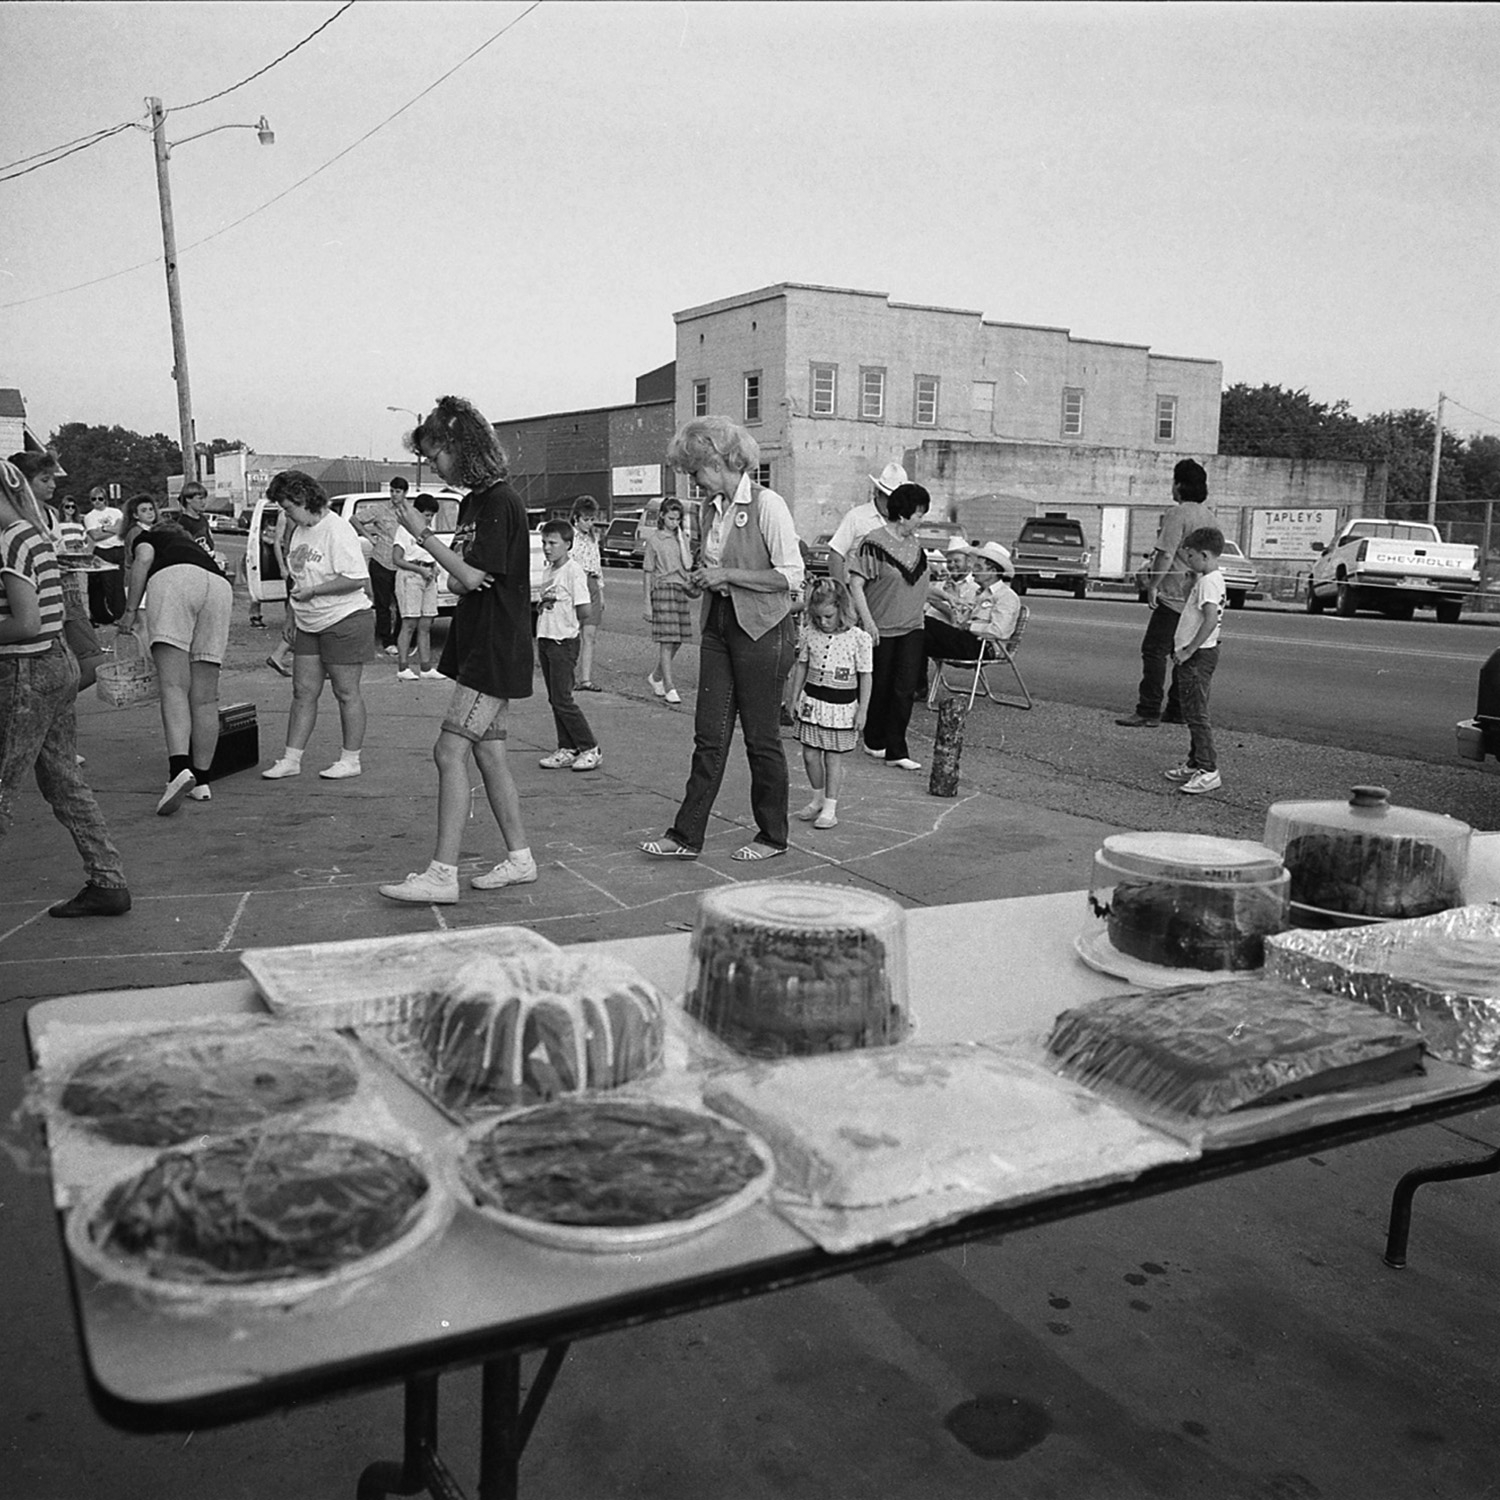 Cake Walk,  Ashland City, Tennessee, archival pigment print, 16x20, 1990